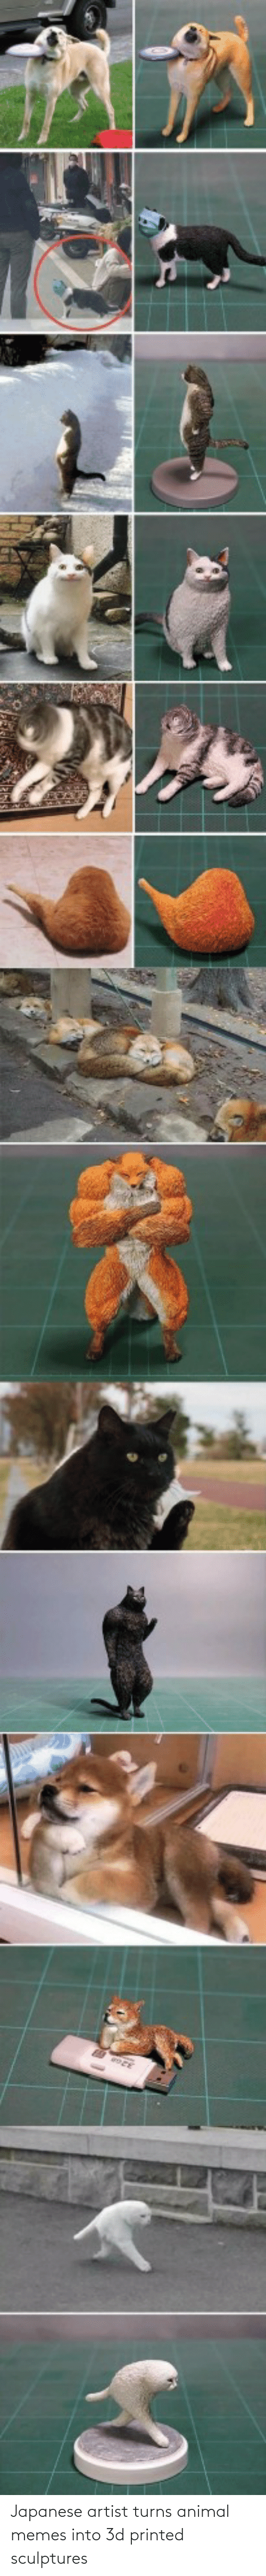 Animal: Japanese artist turns animal memes into 3d printed sculptures